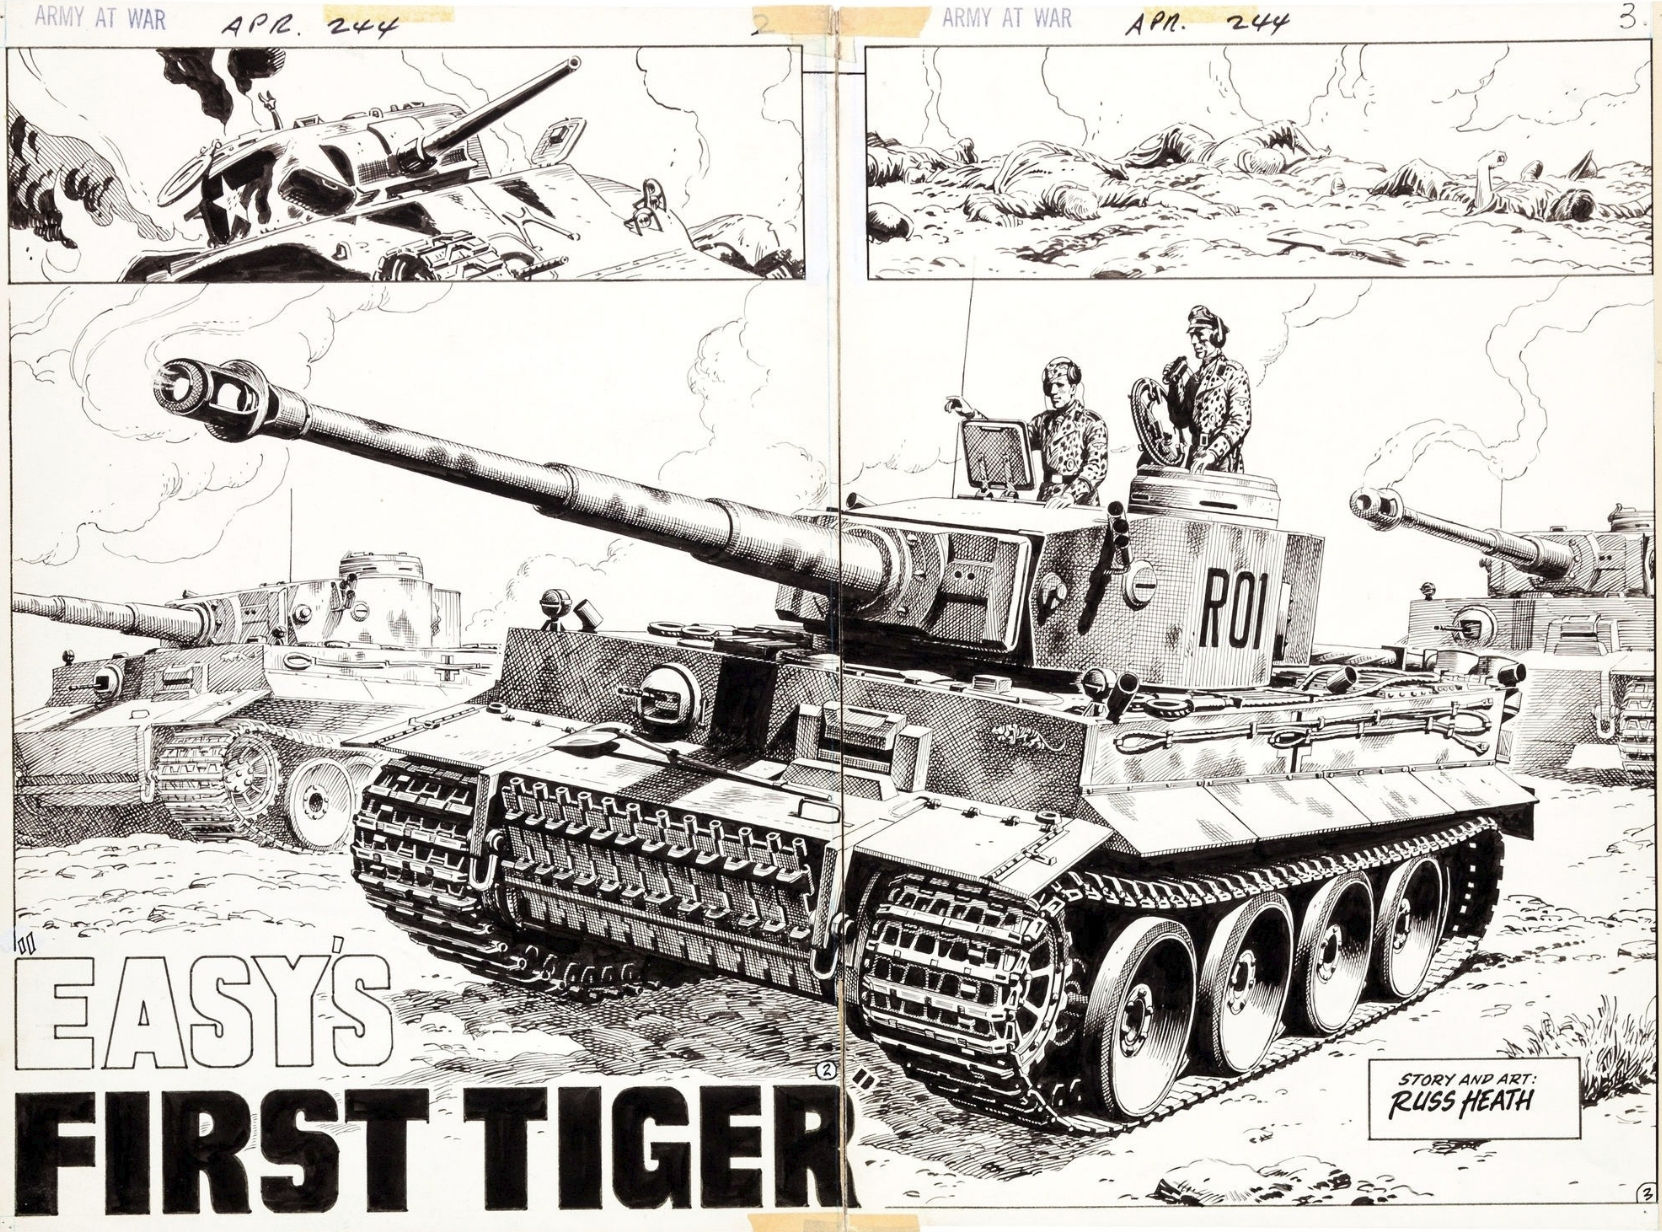 """The original art for """"Easy's First Tiger"""", from Our Army At War #244. Drawn by Russ Heath."""